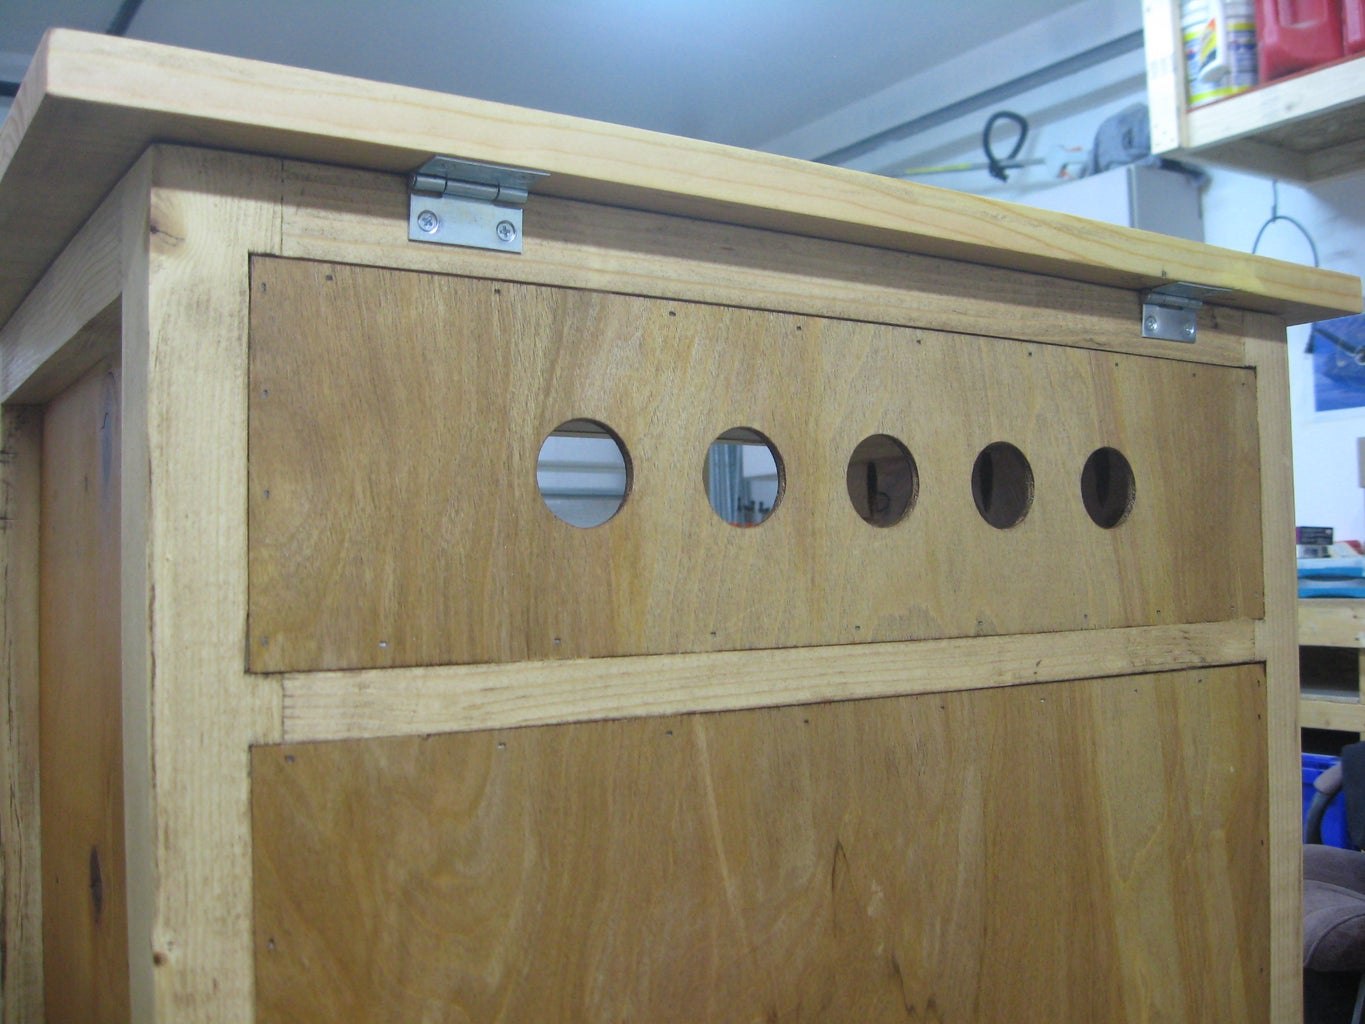 Mount Hardware and Top Panel